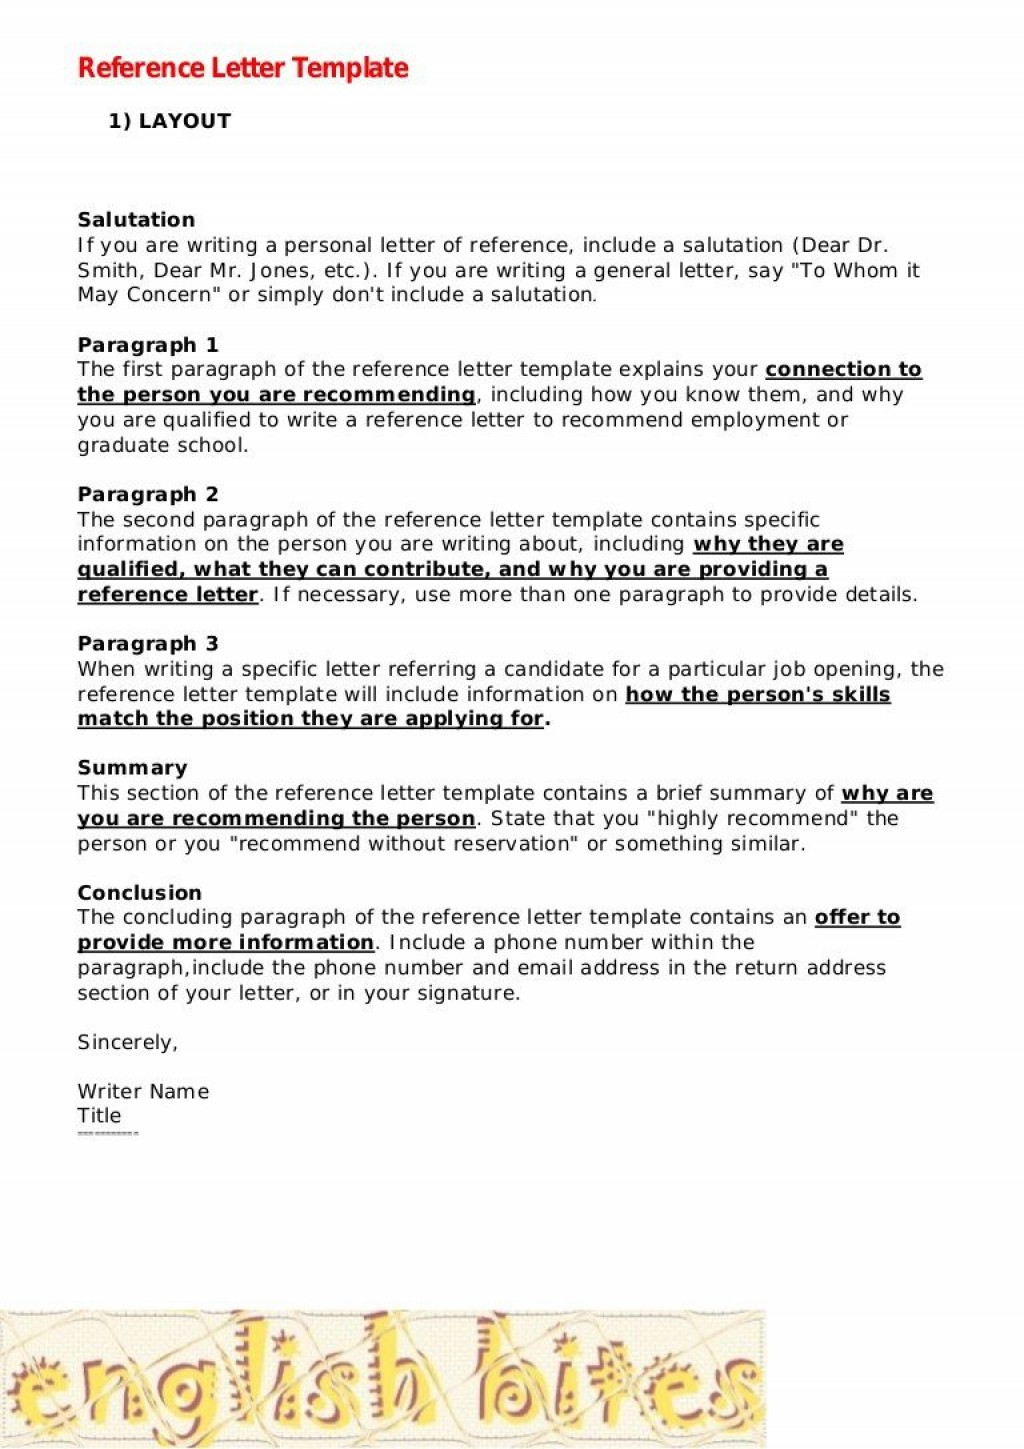 009 Best Personal Reference Letter Template High Resolution  Character Word For Rental ApplicationLarge